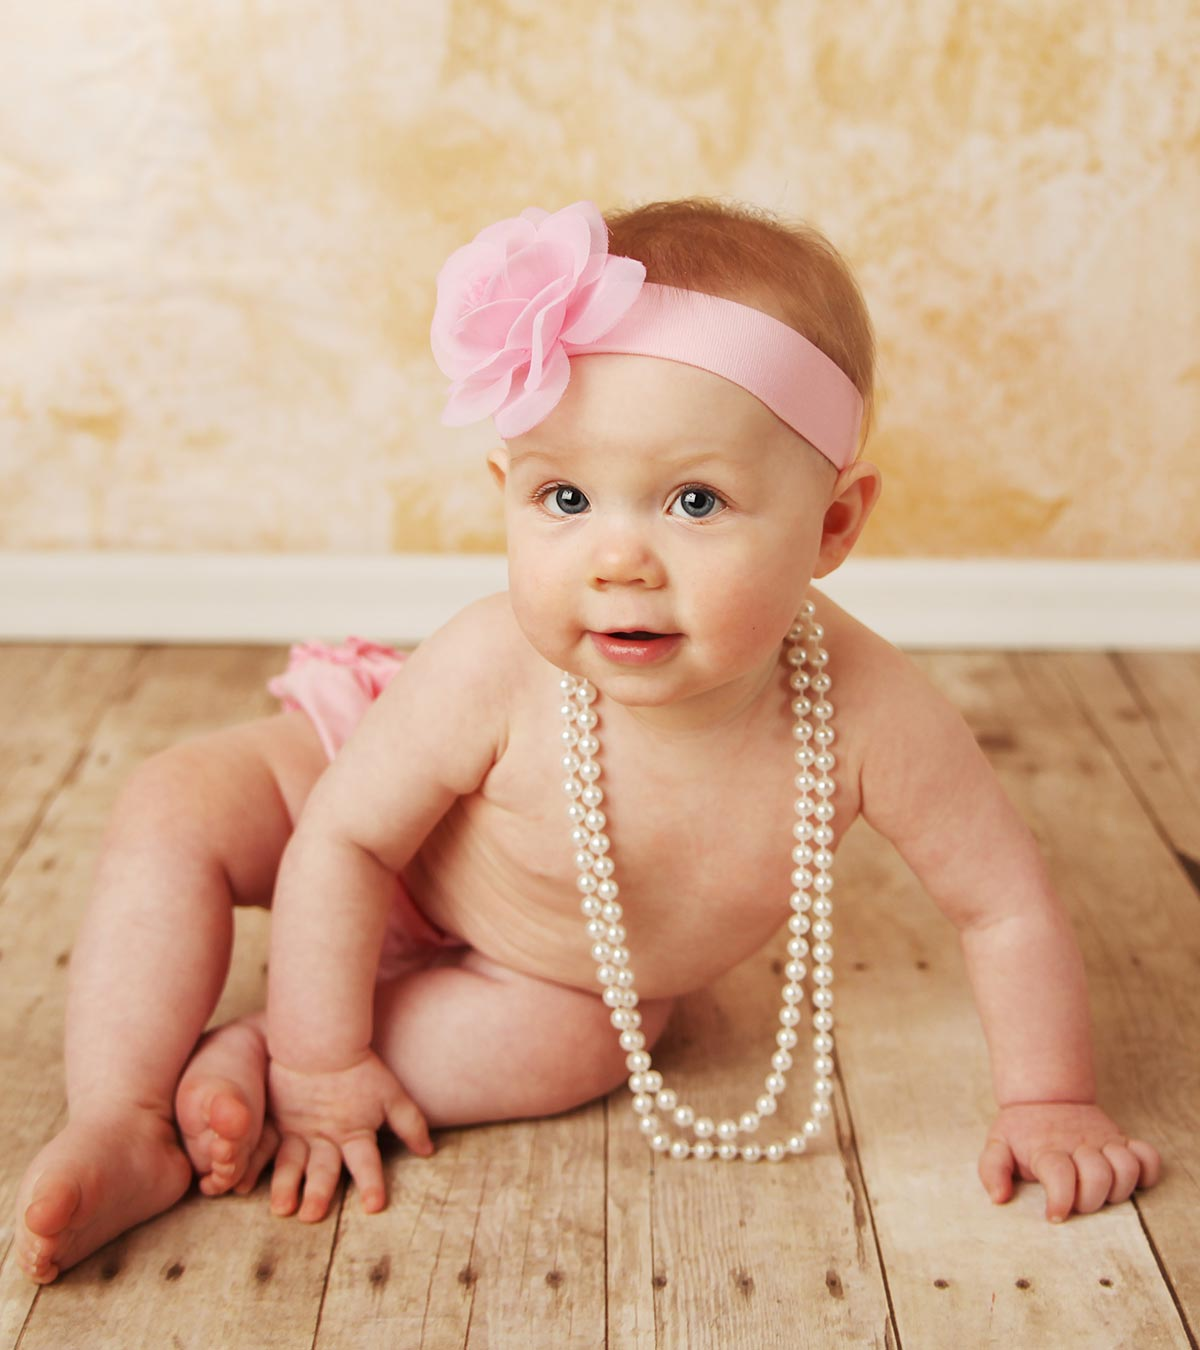 25 Beautiful Vintage Girl Names That Stand The Test Of Time